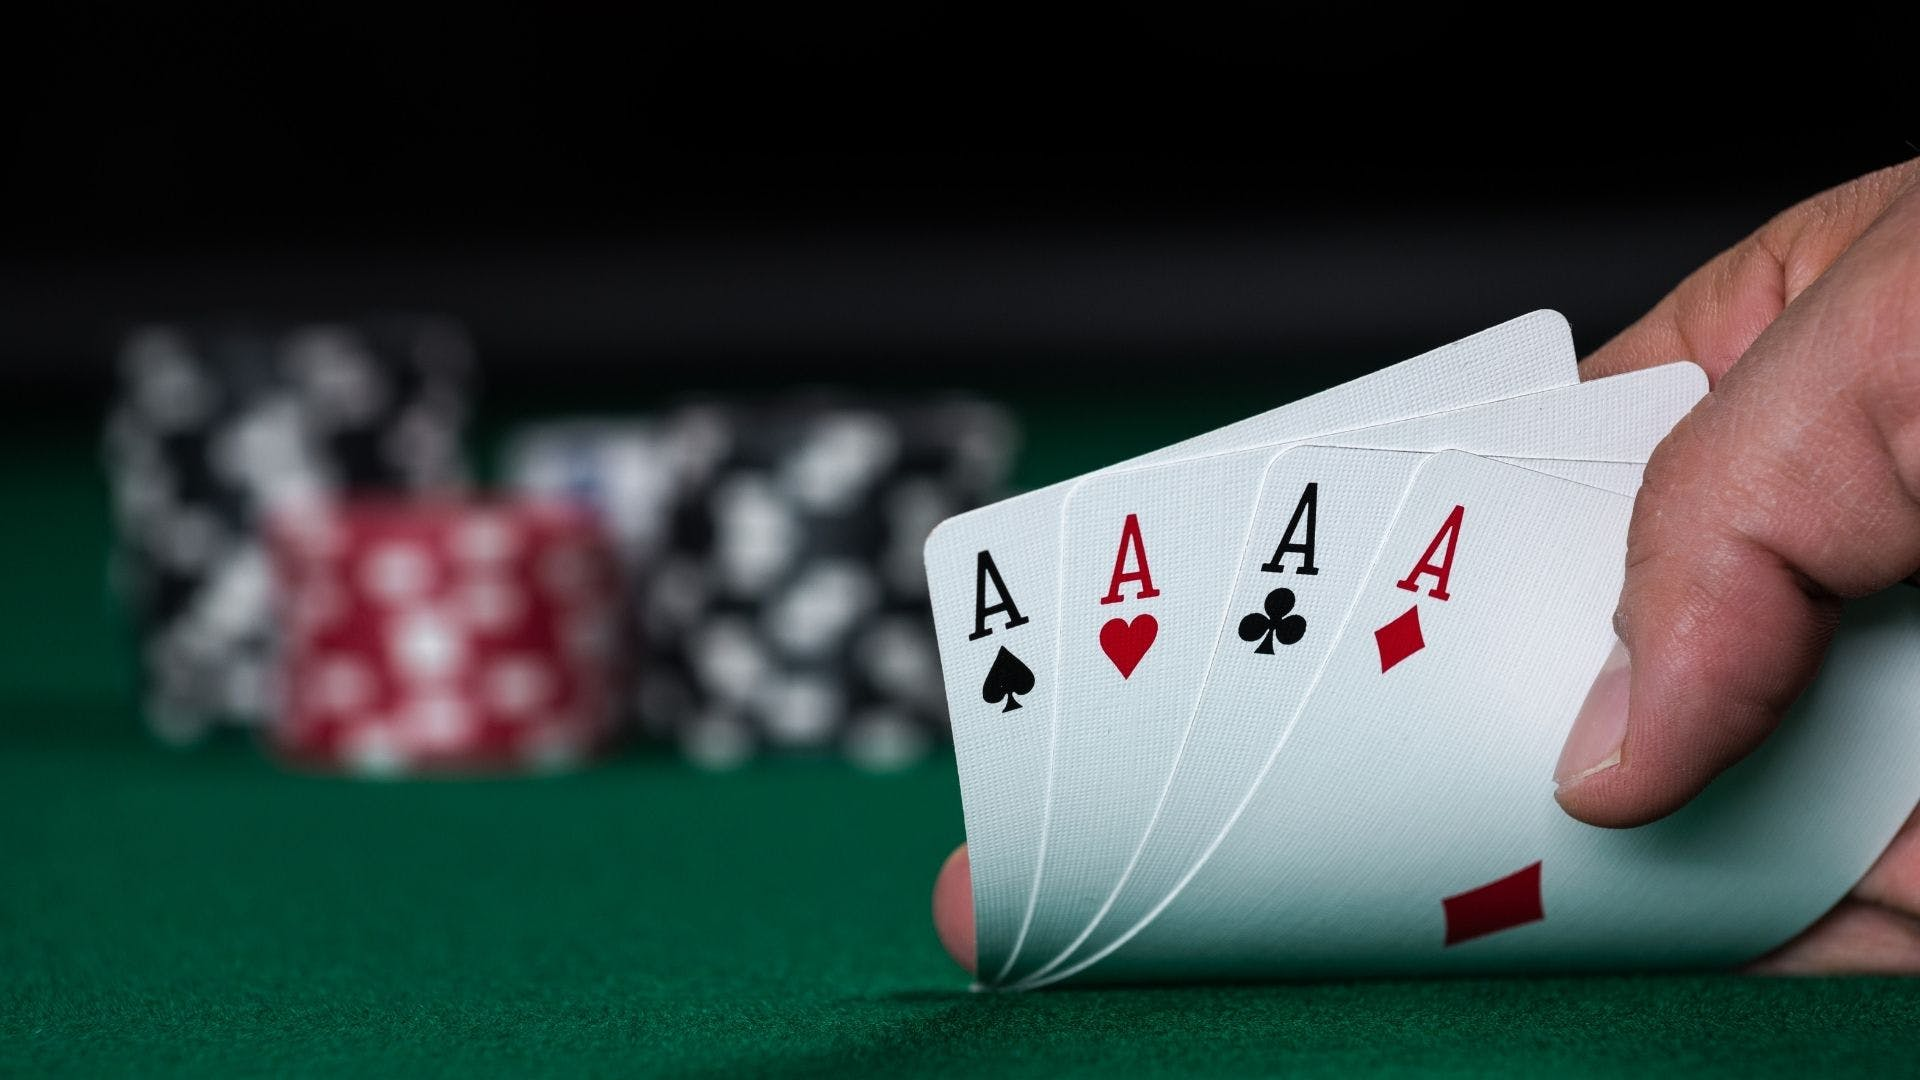 A poker hand of four Aces